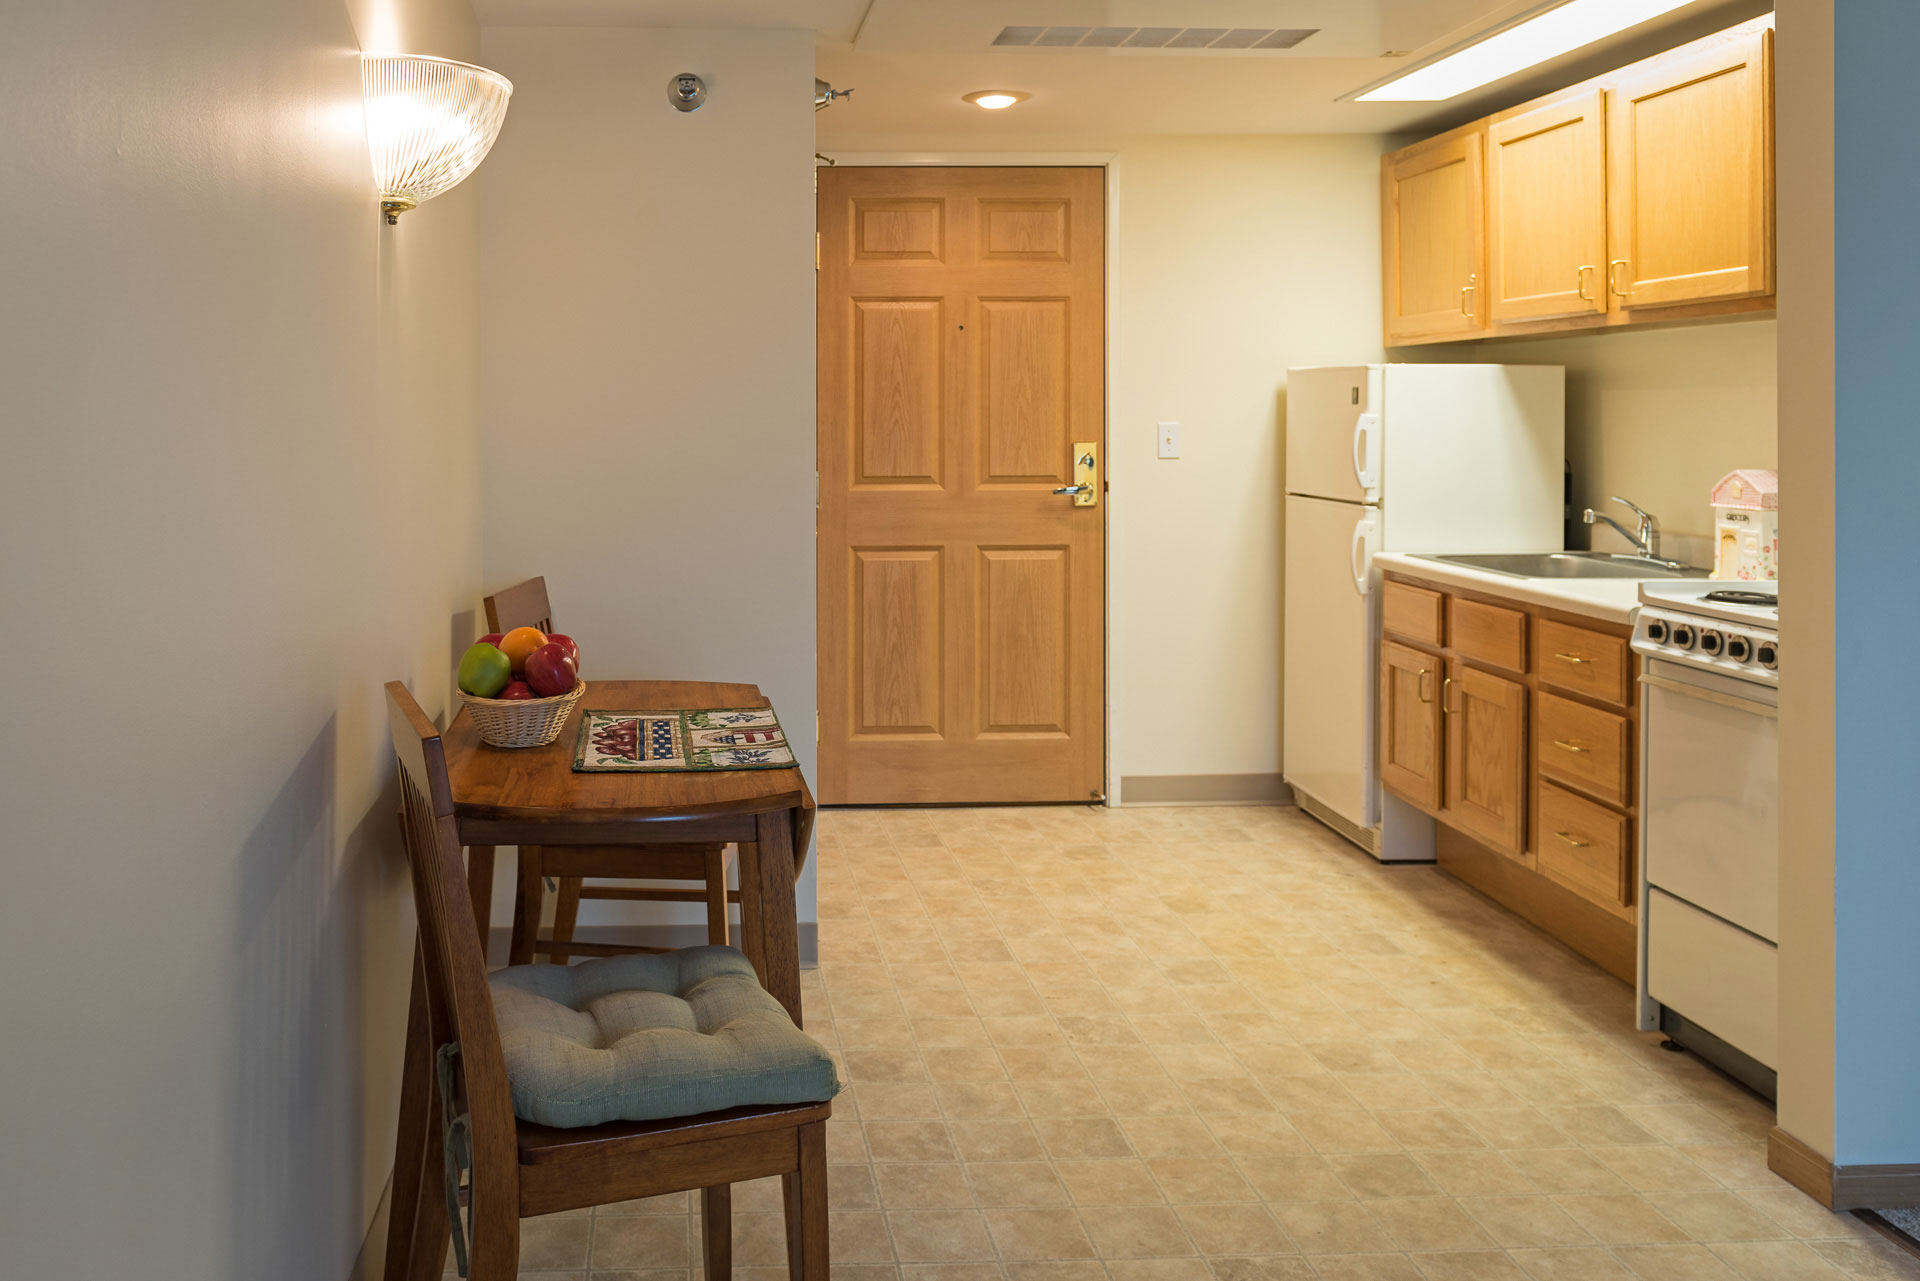 Kitchen and sitting area in a room at Epiphany Senior Living